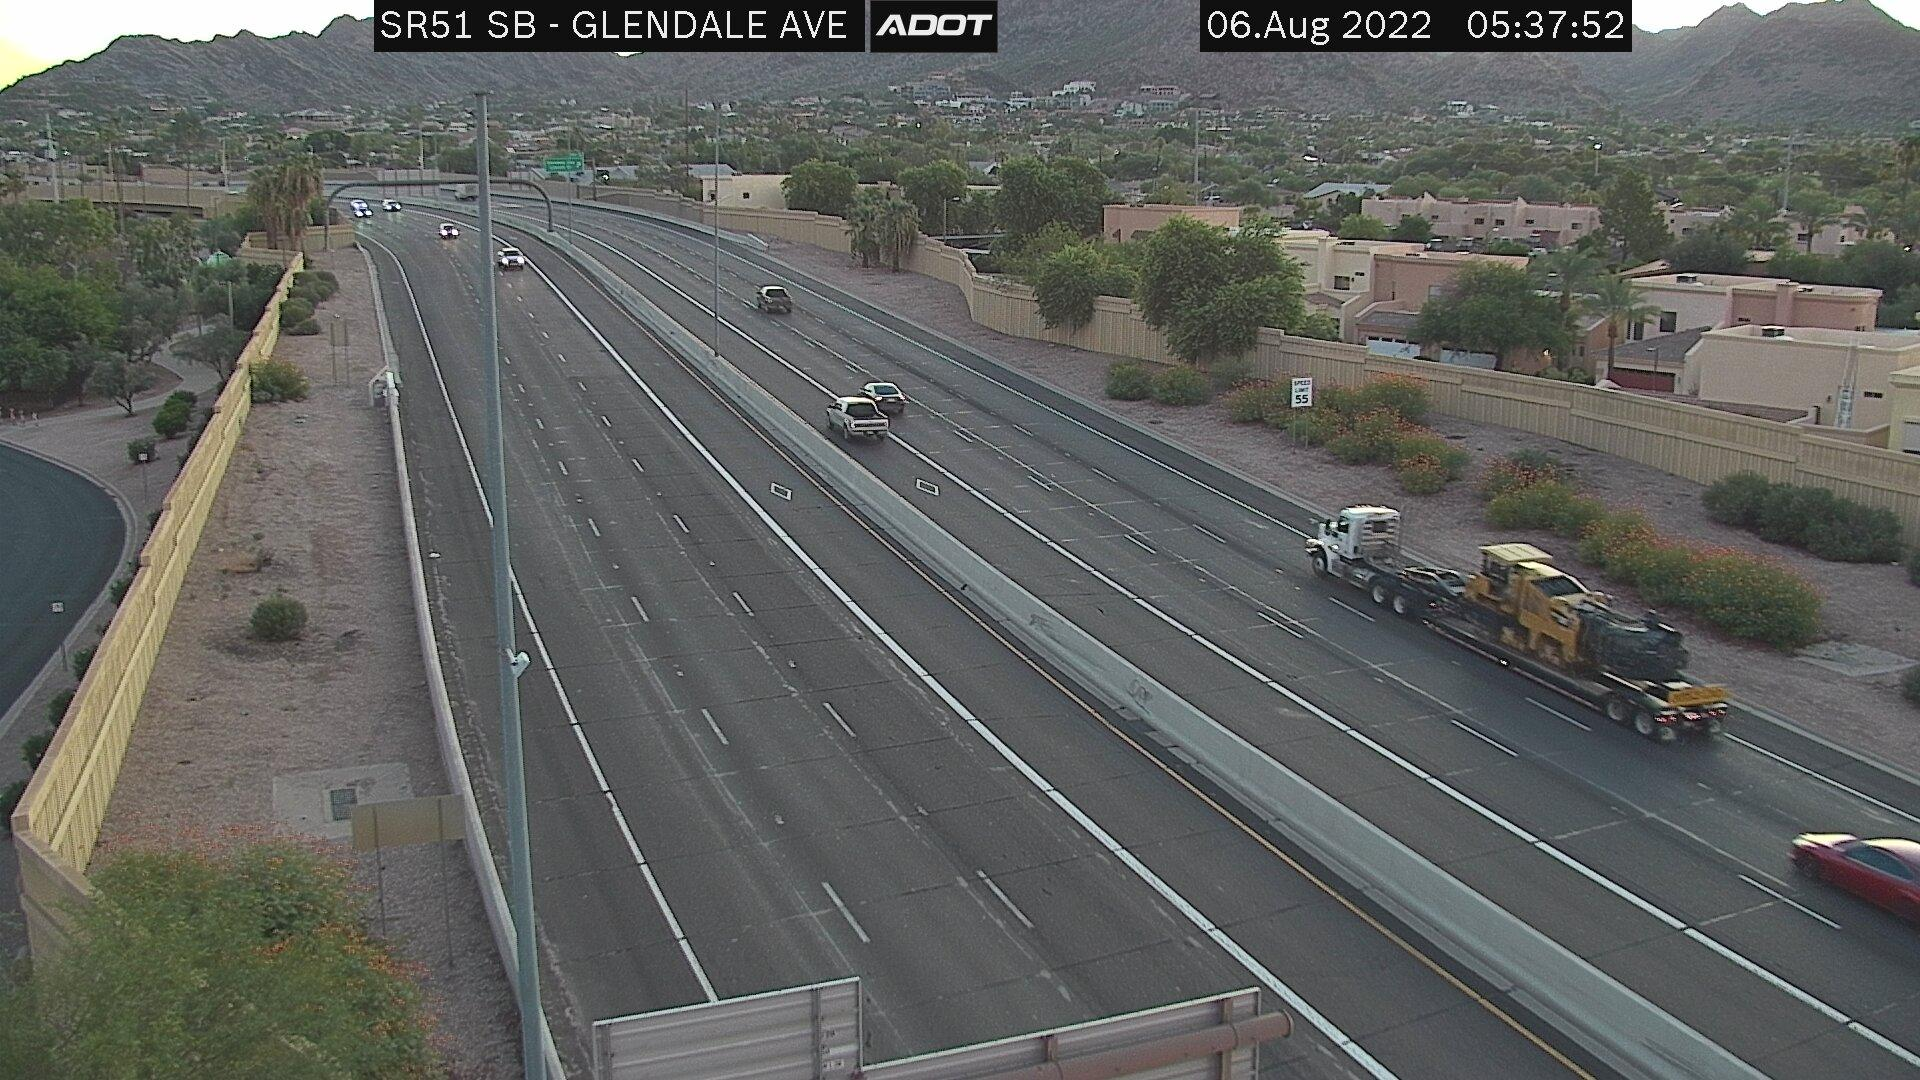 Webcam Estate Monterra: SR 51 South of Glendale